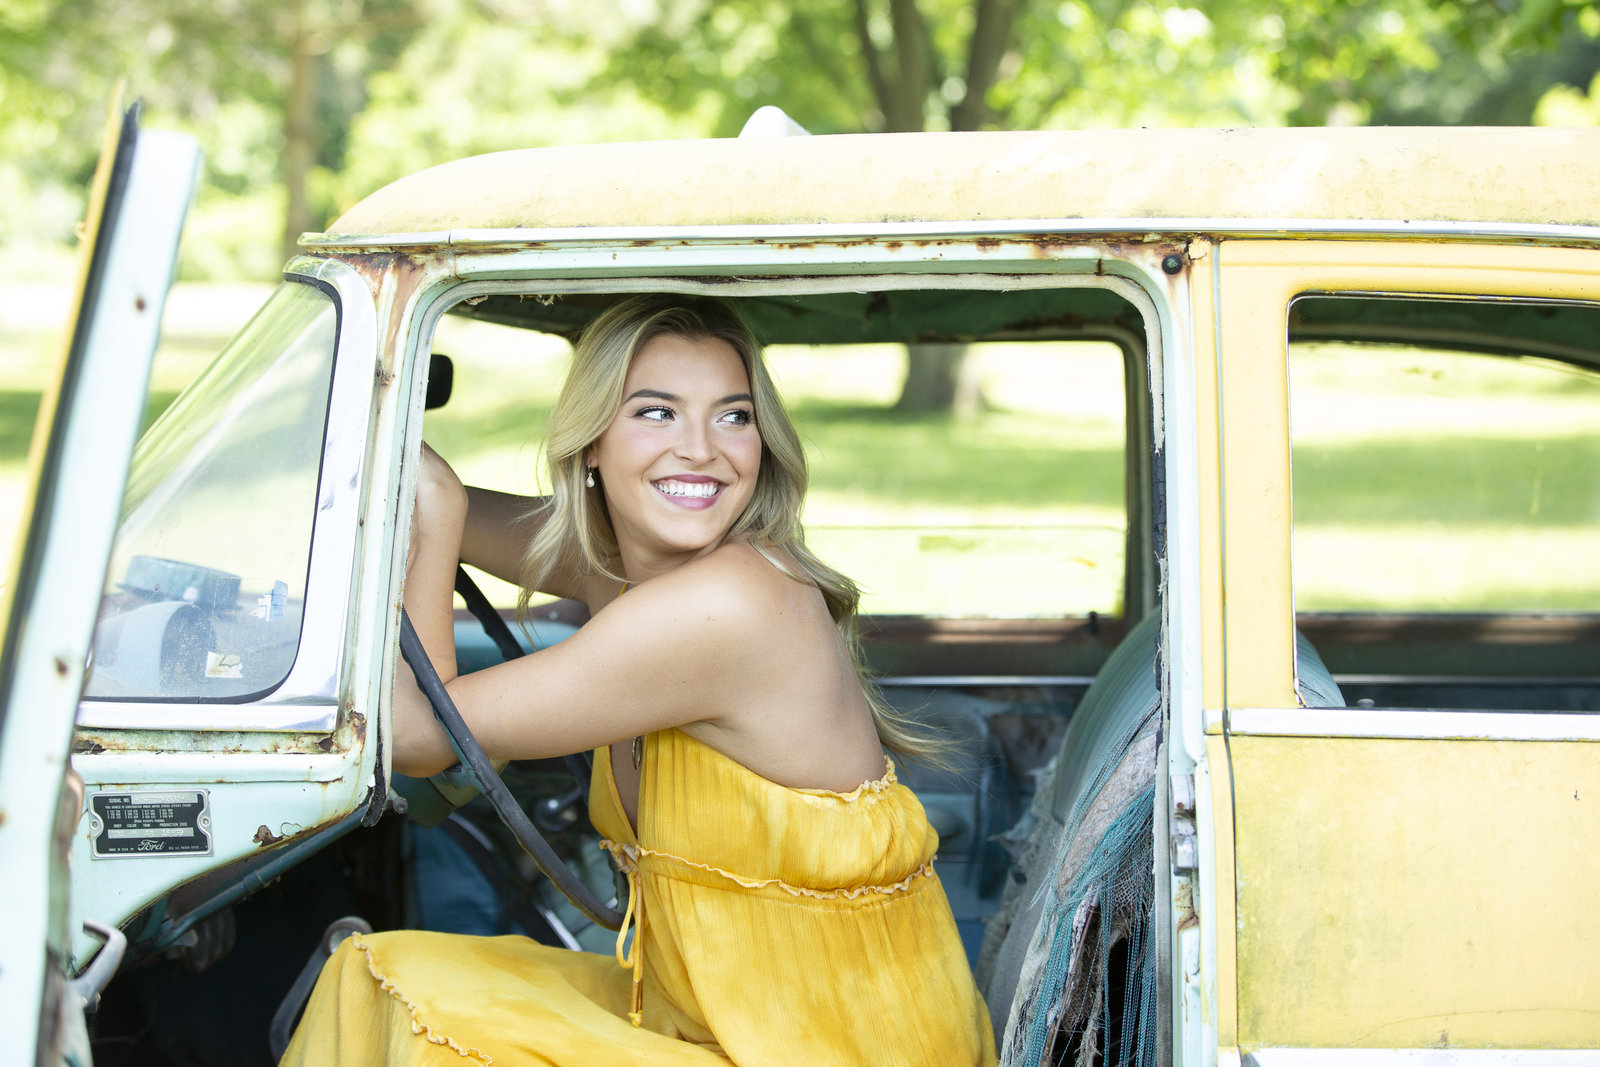 macon-georgia-taxi-senior-photographer-jlfarmer-3089